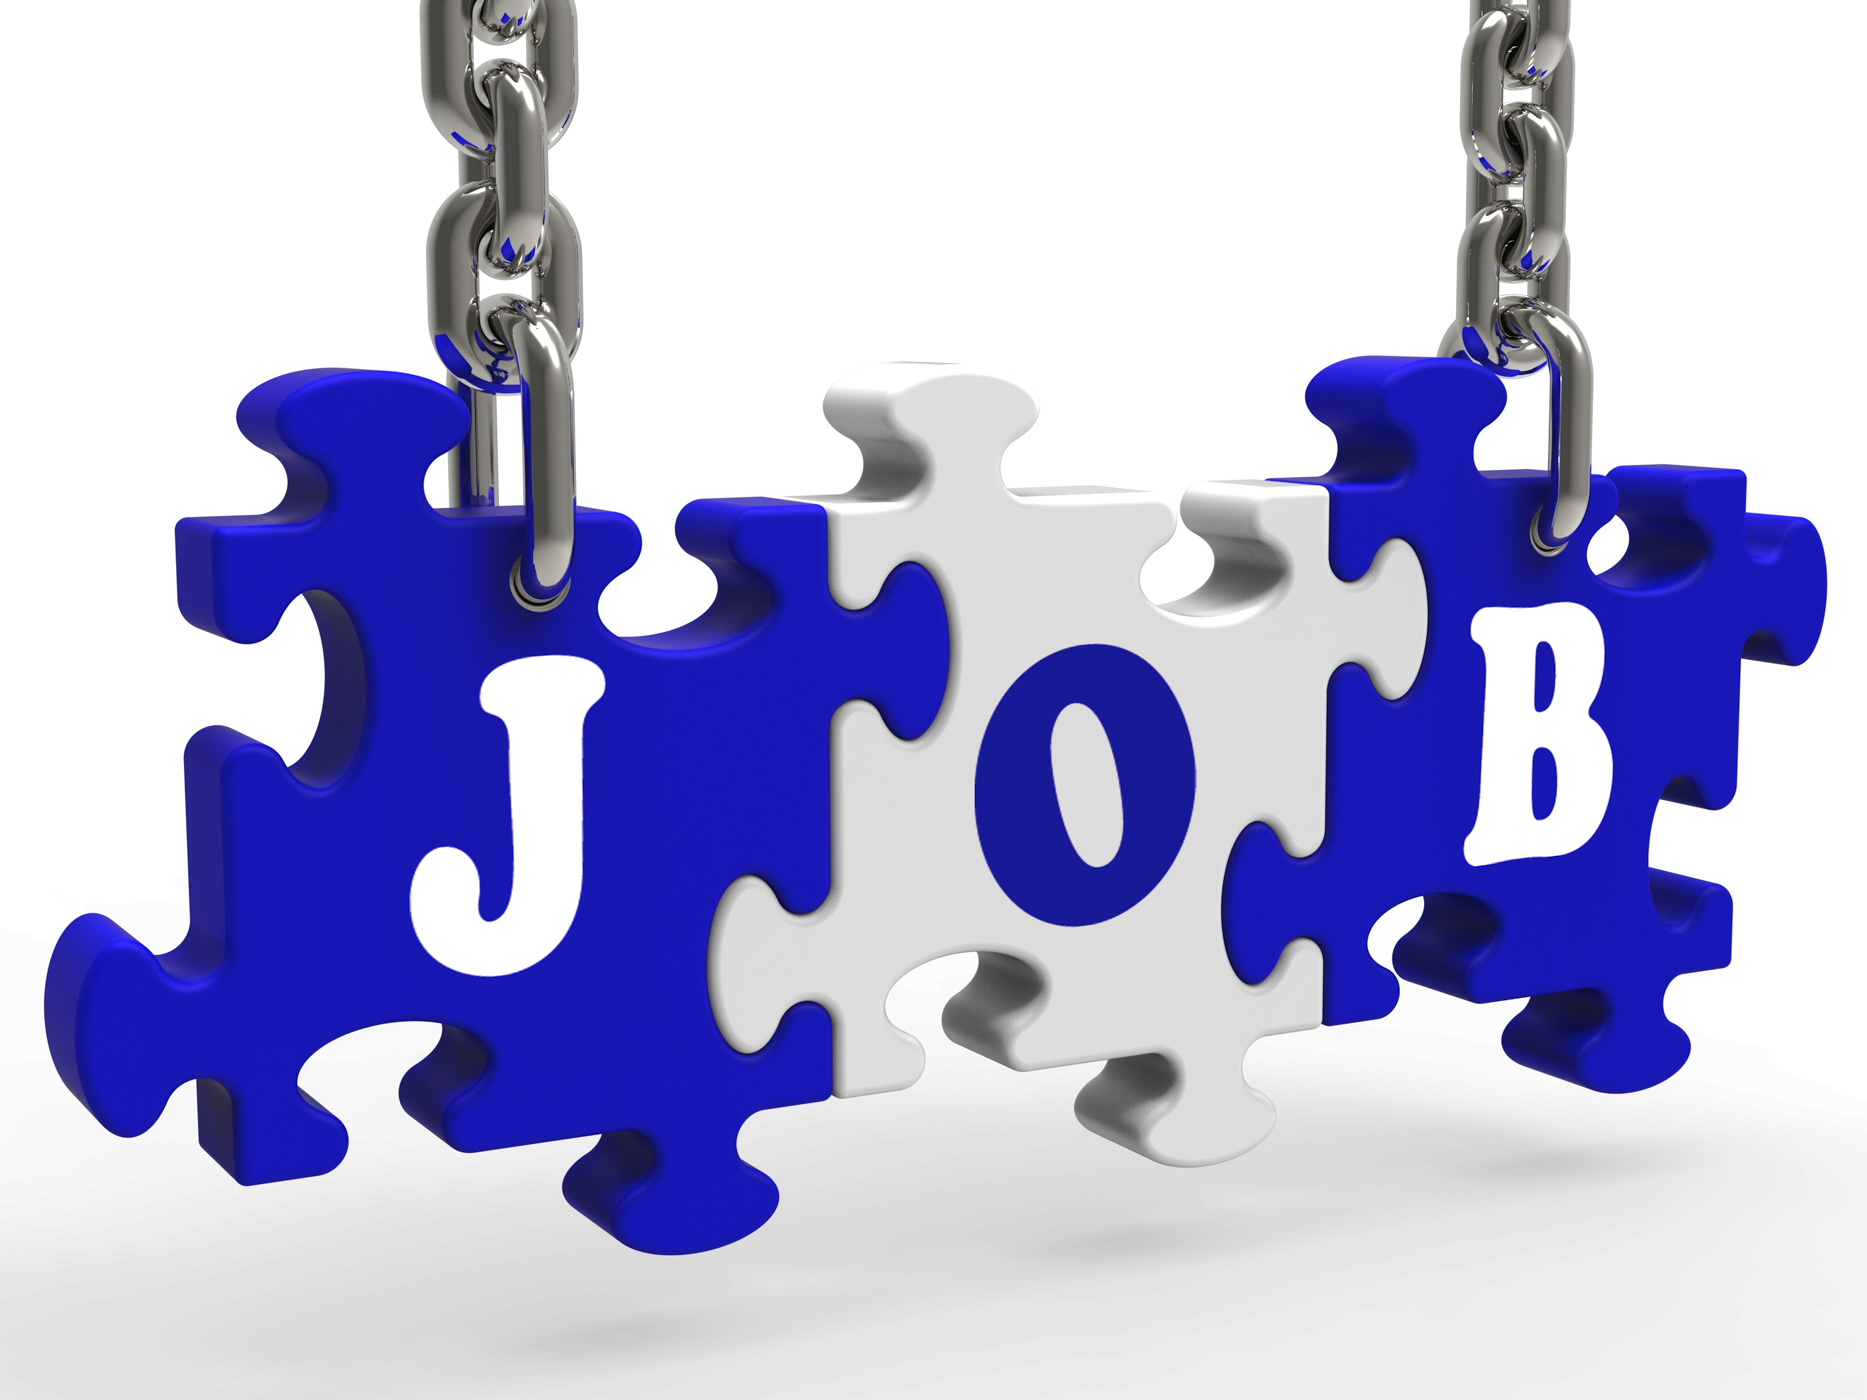 Job Shows Work Careers Employment And Occupation, Career, Profession, Work, Vocational, HQ Photo